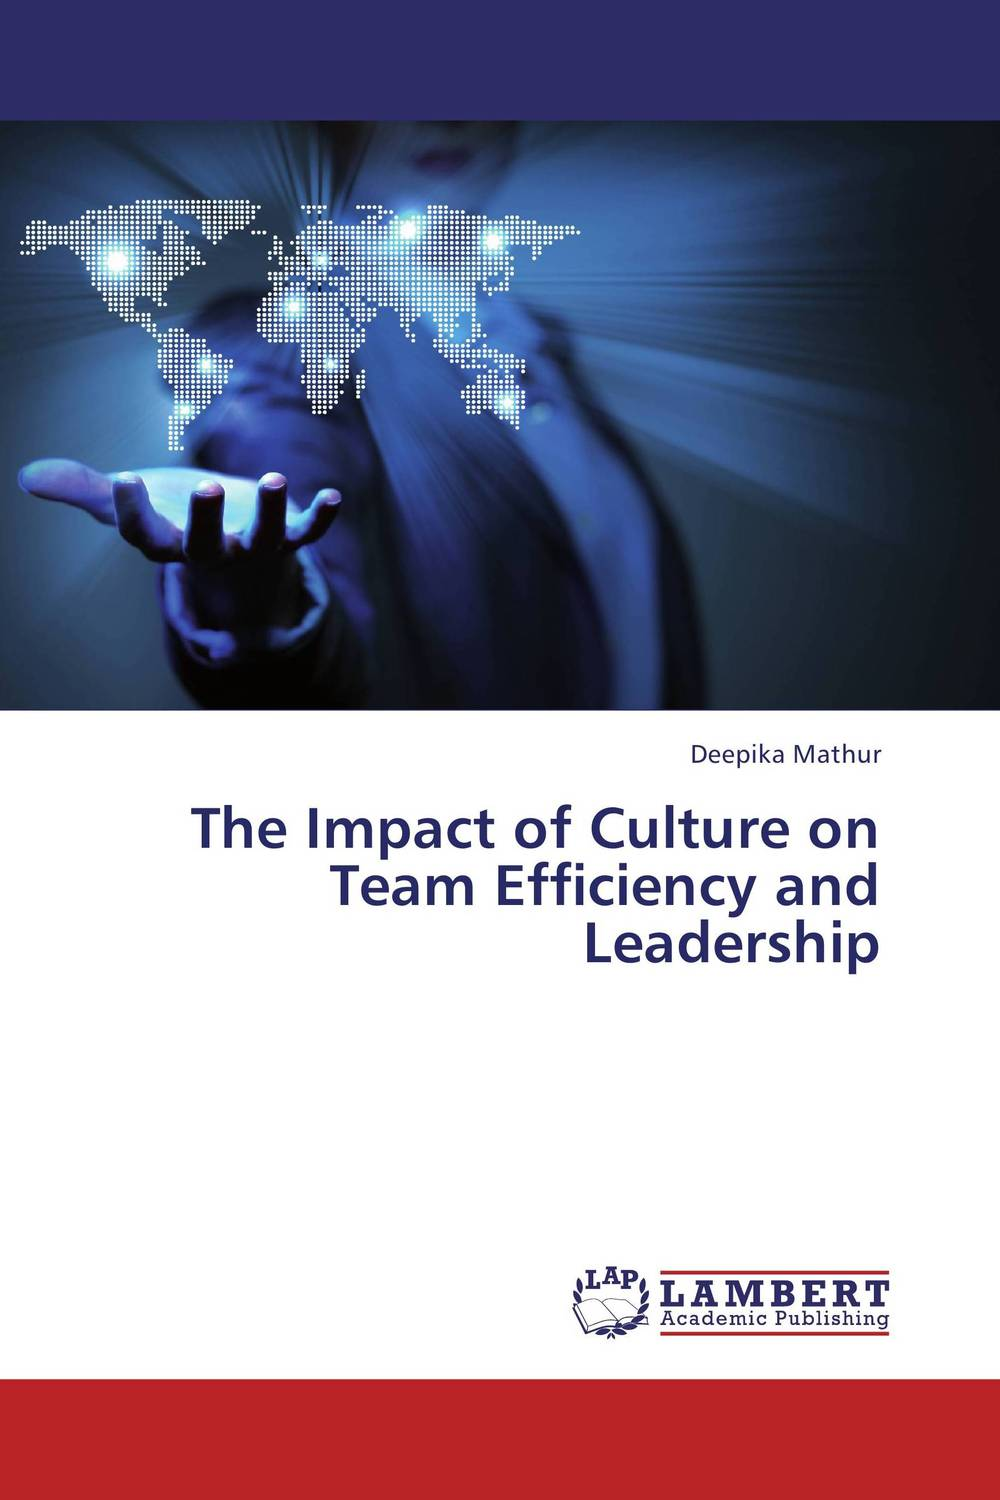 The Impact of Culture on Team Efficiency and Leadership team effectiveness